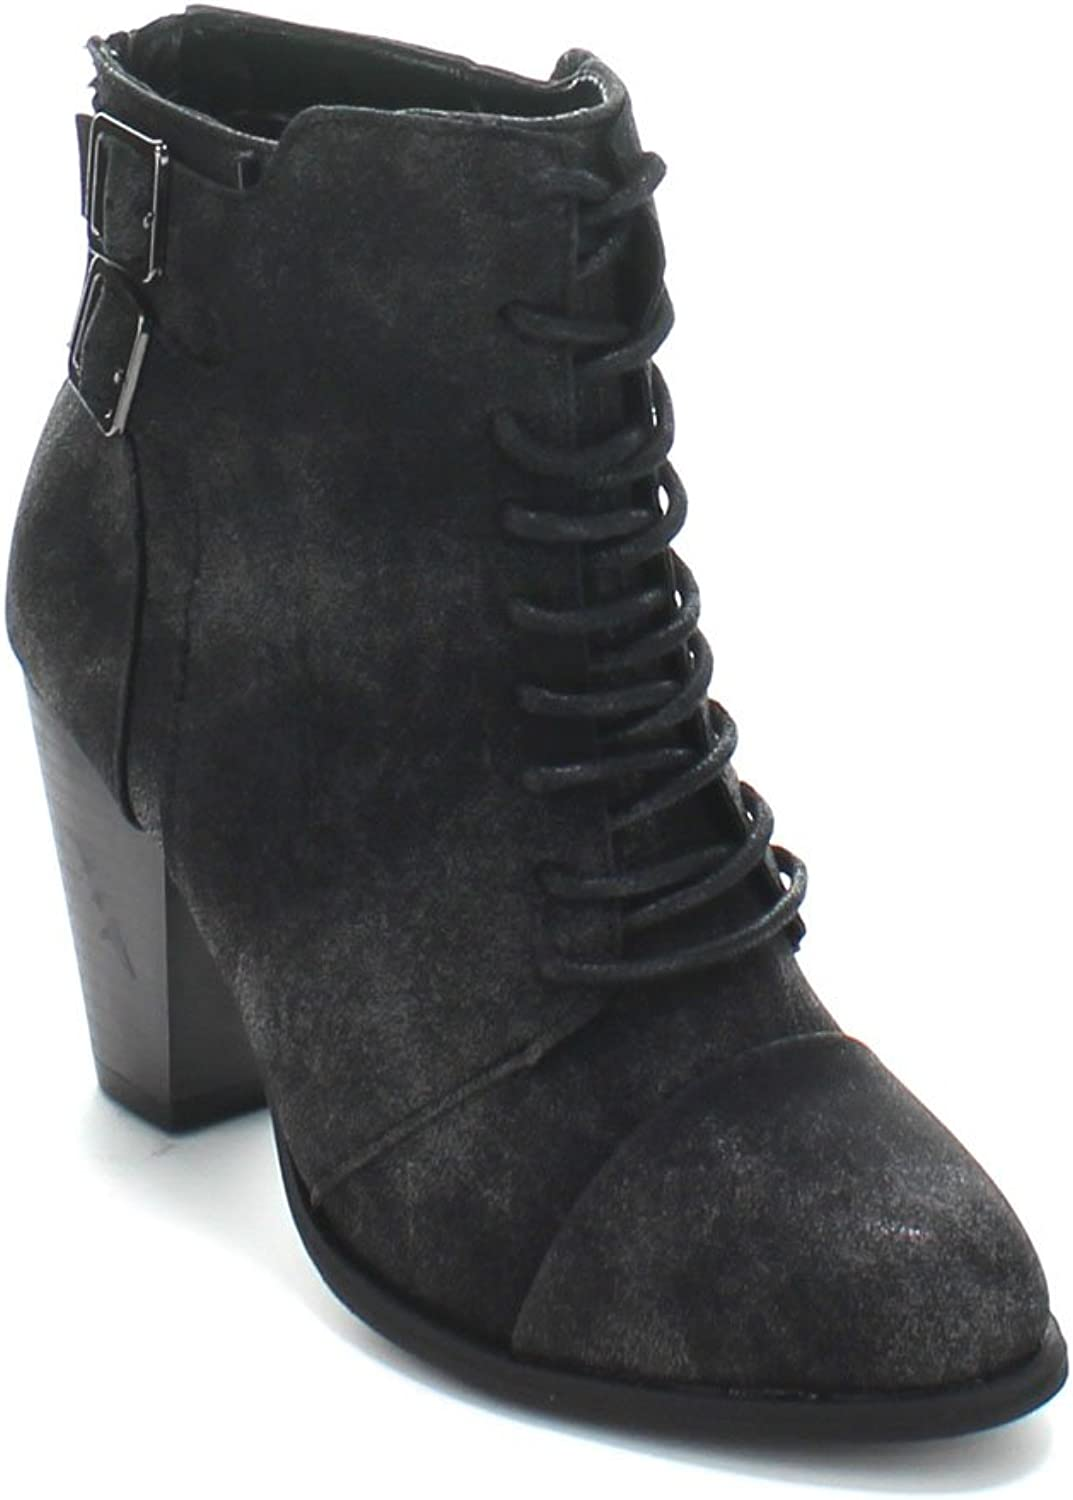 Forever Camila-63 Womens Chunky Heel Adjustable Buckle Lace Up Ankle Booties,Black,7